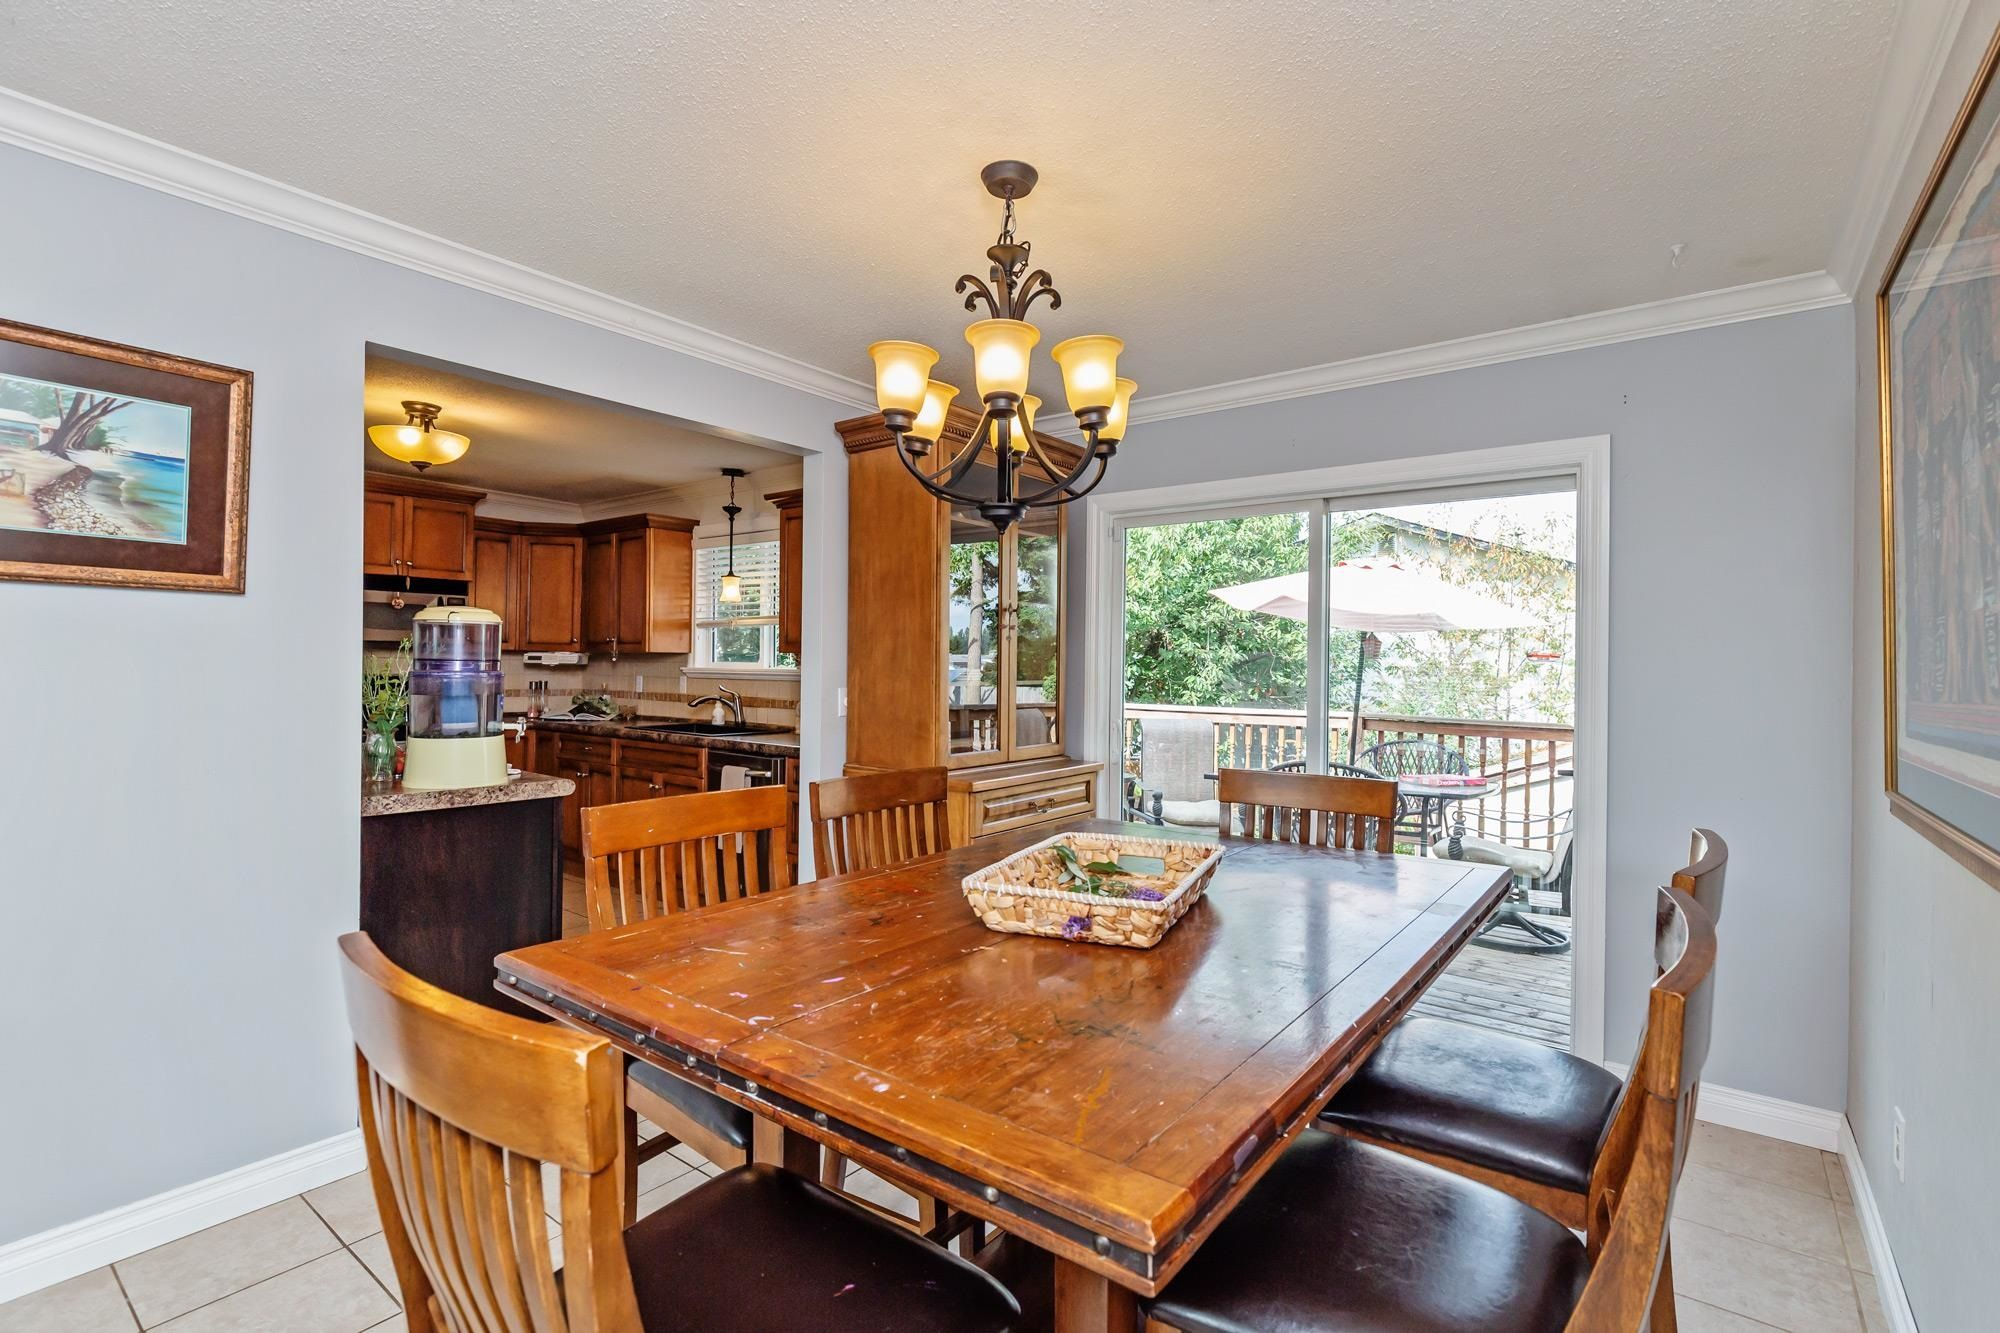 Photo 8: Photos: 32319 ATWATER Crescent in Abbotsford: Abbotsford West House for sale : MLS®# R2609136